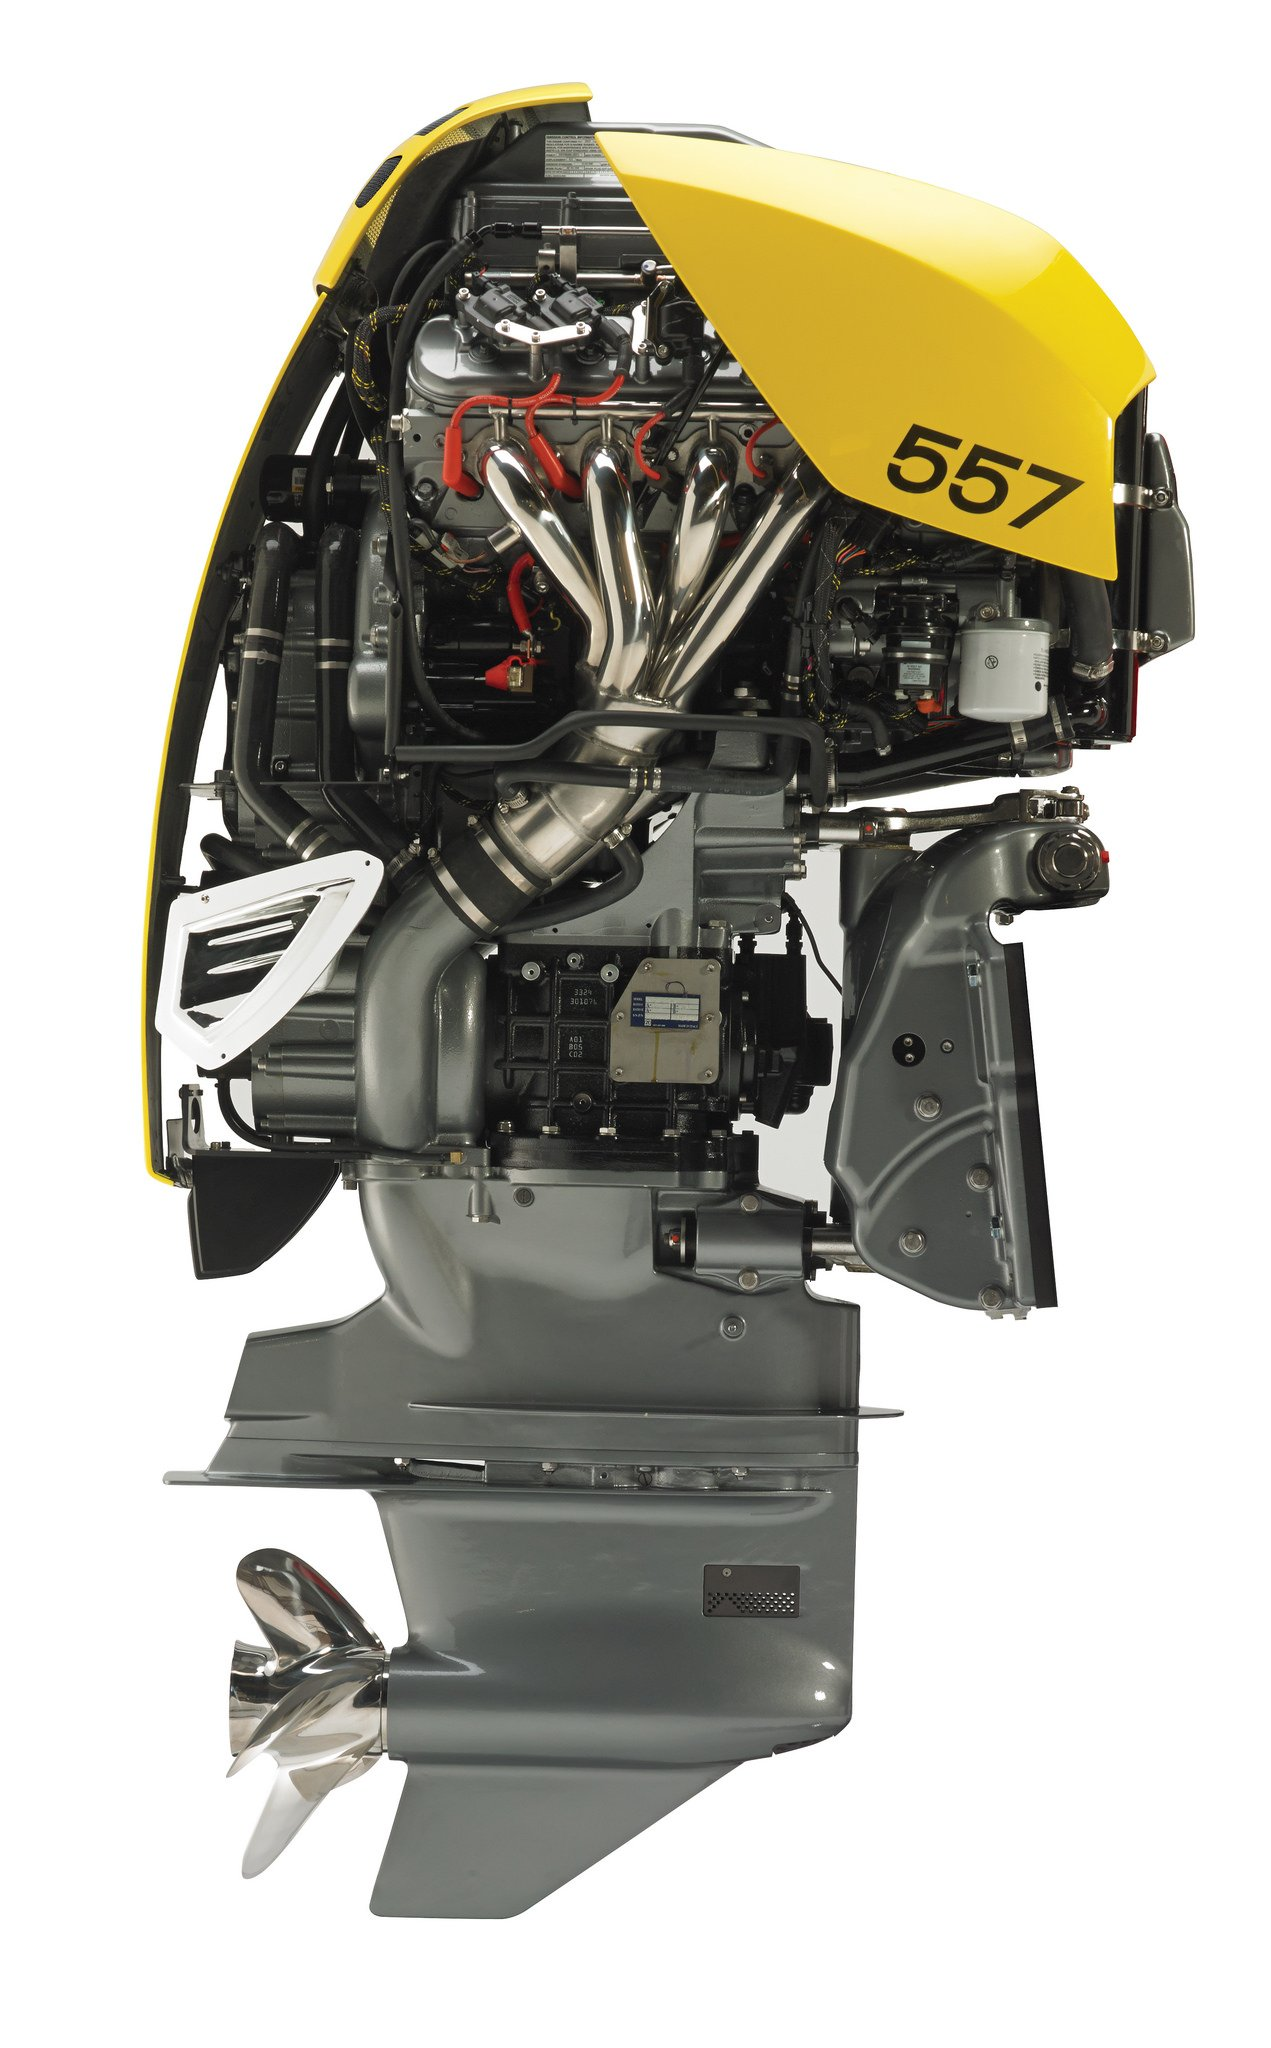 Video 4 lsa outboards equals one 2 228 horsepower fishing for Outboard motor parts online